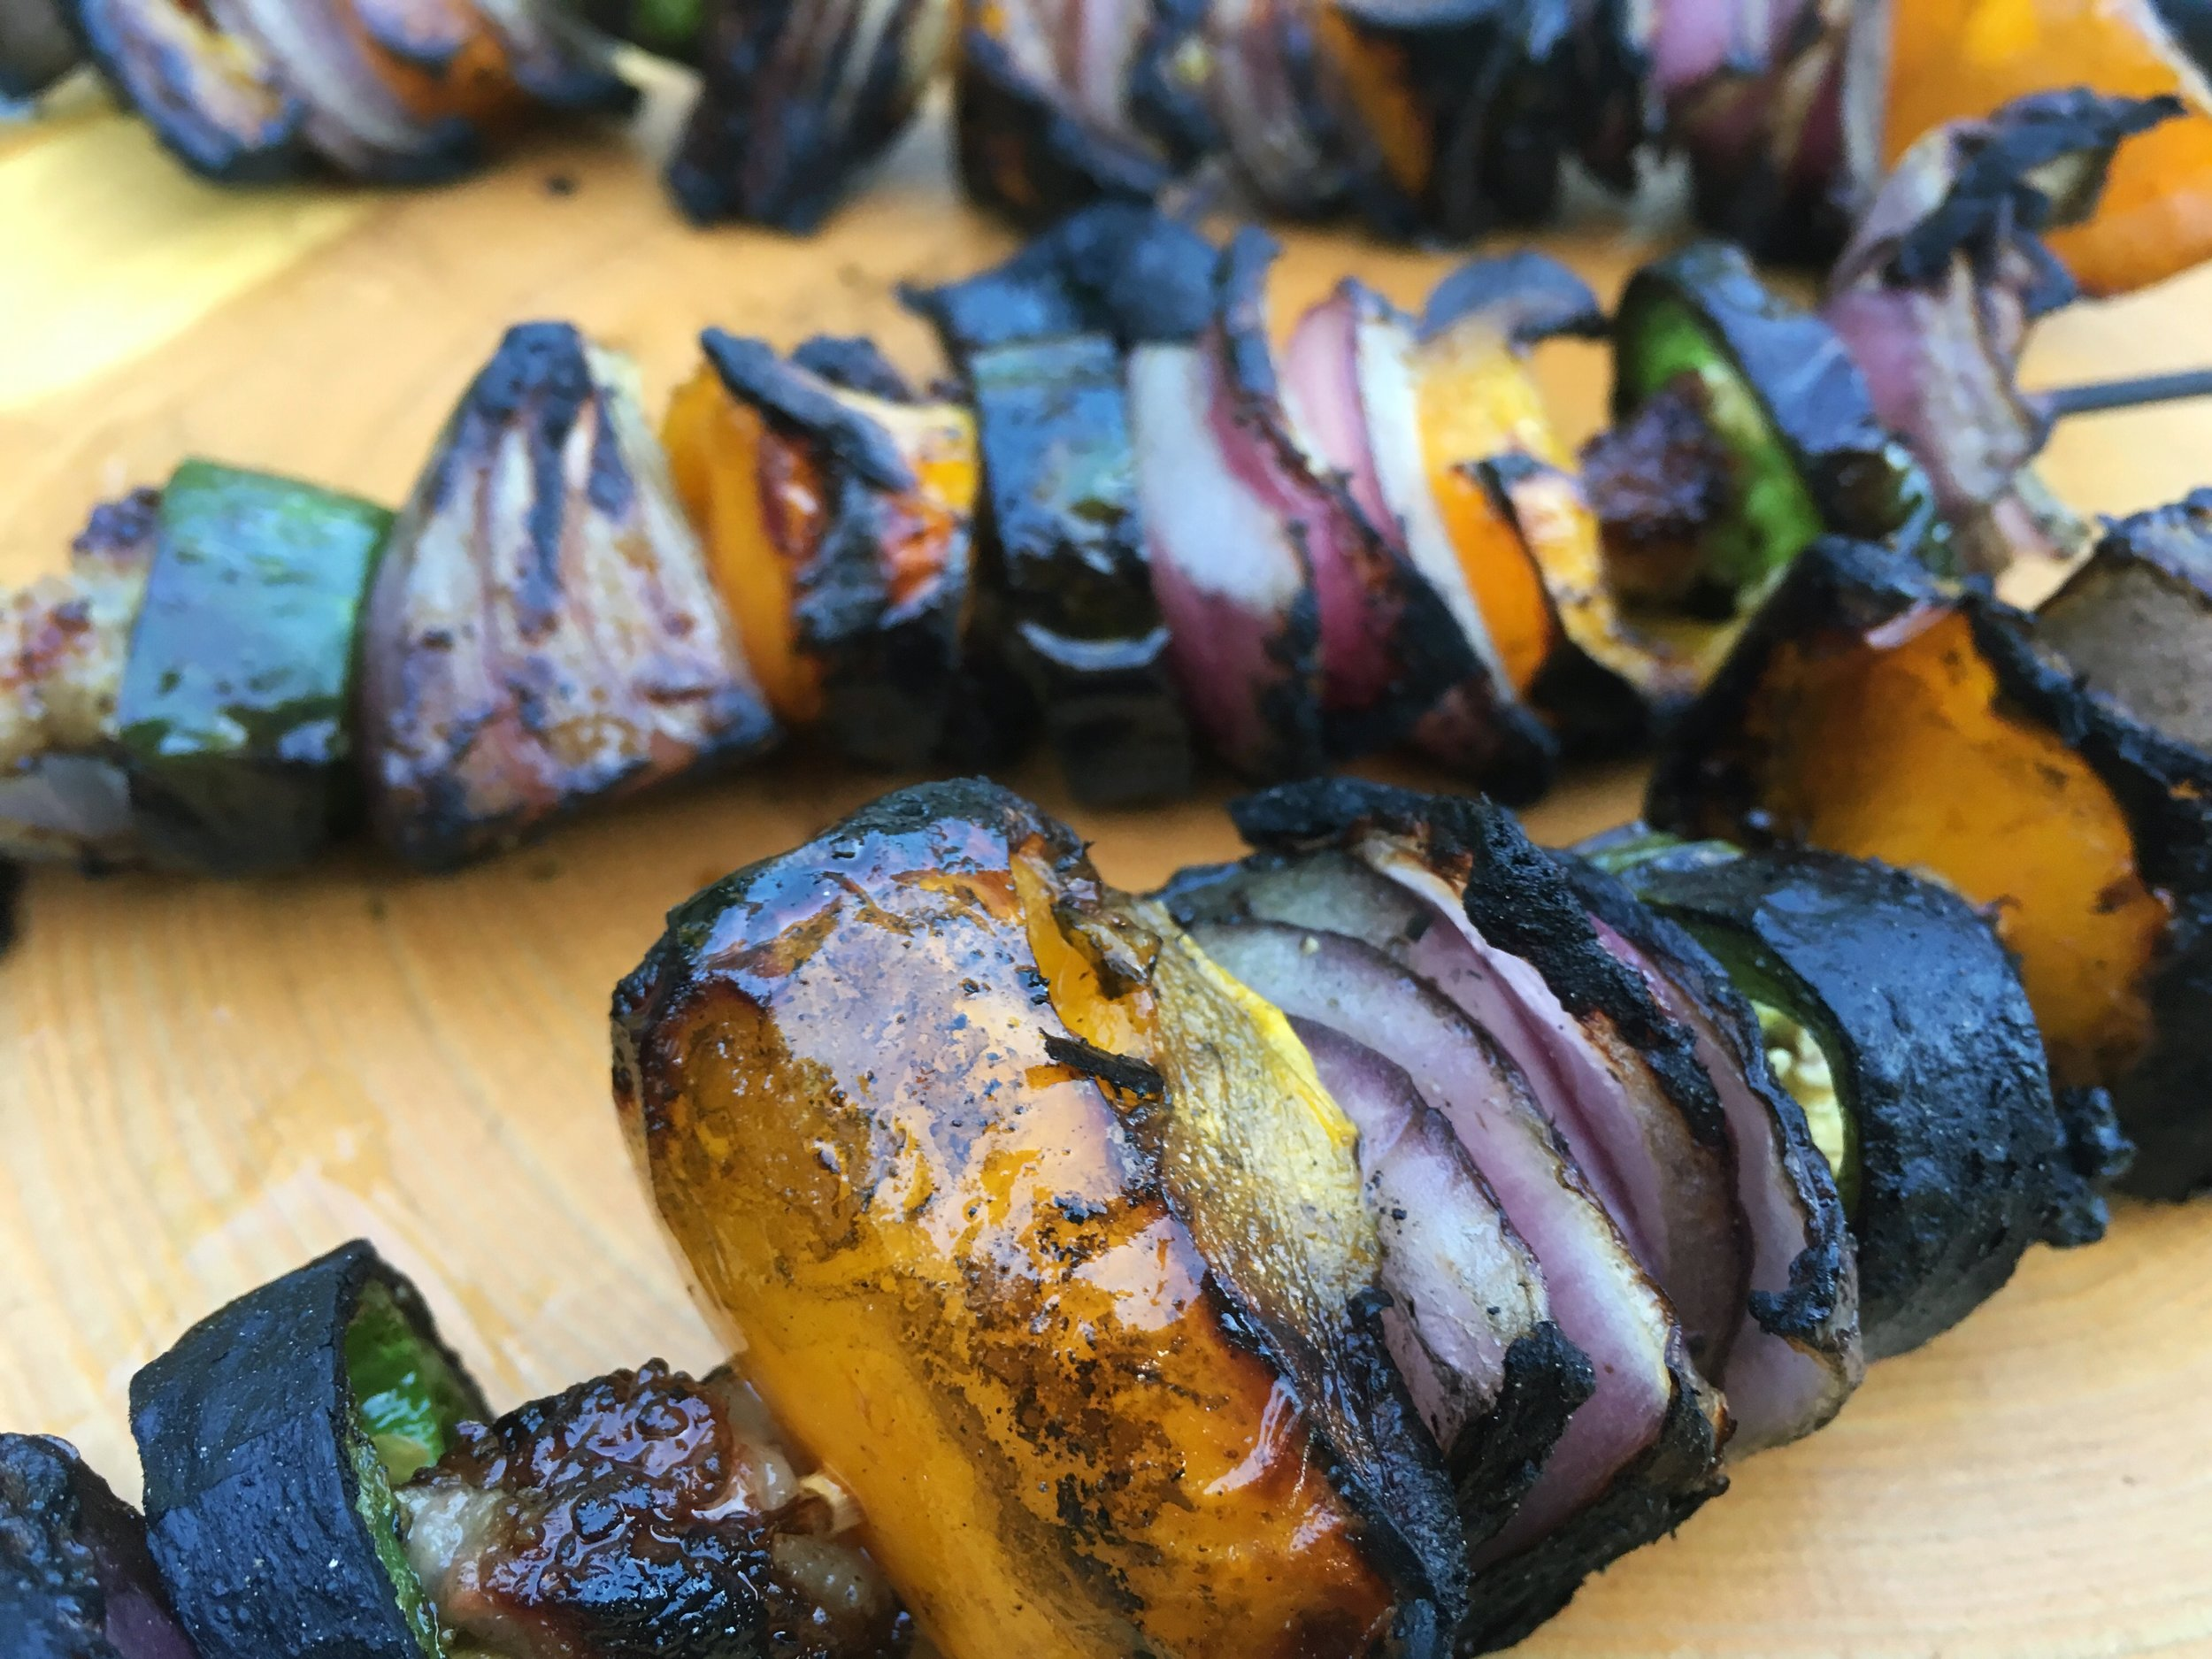 Grilled veggie skewers with duck fat, jalapenos, yellow peppers, and red onions